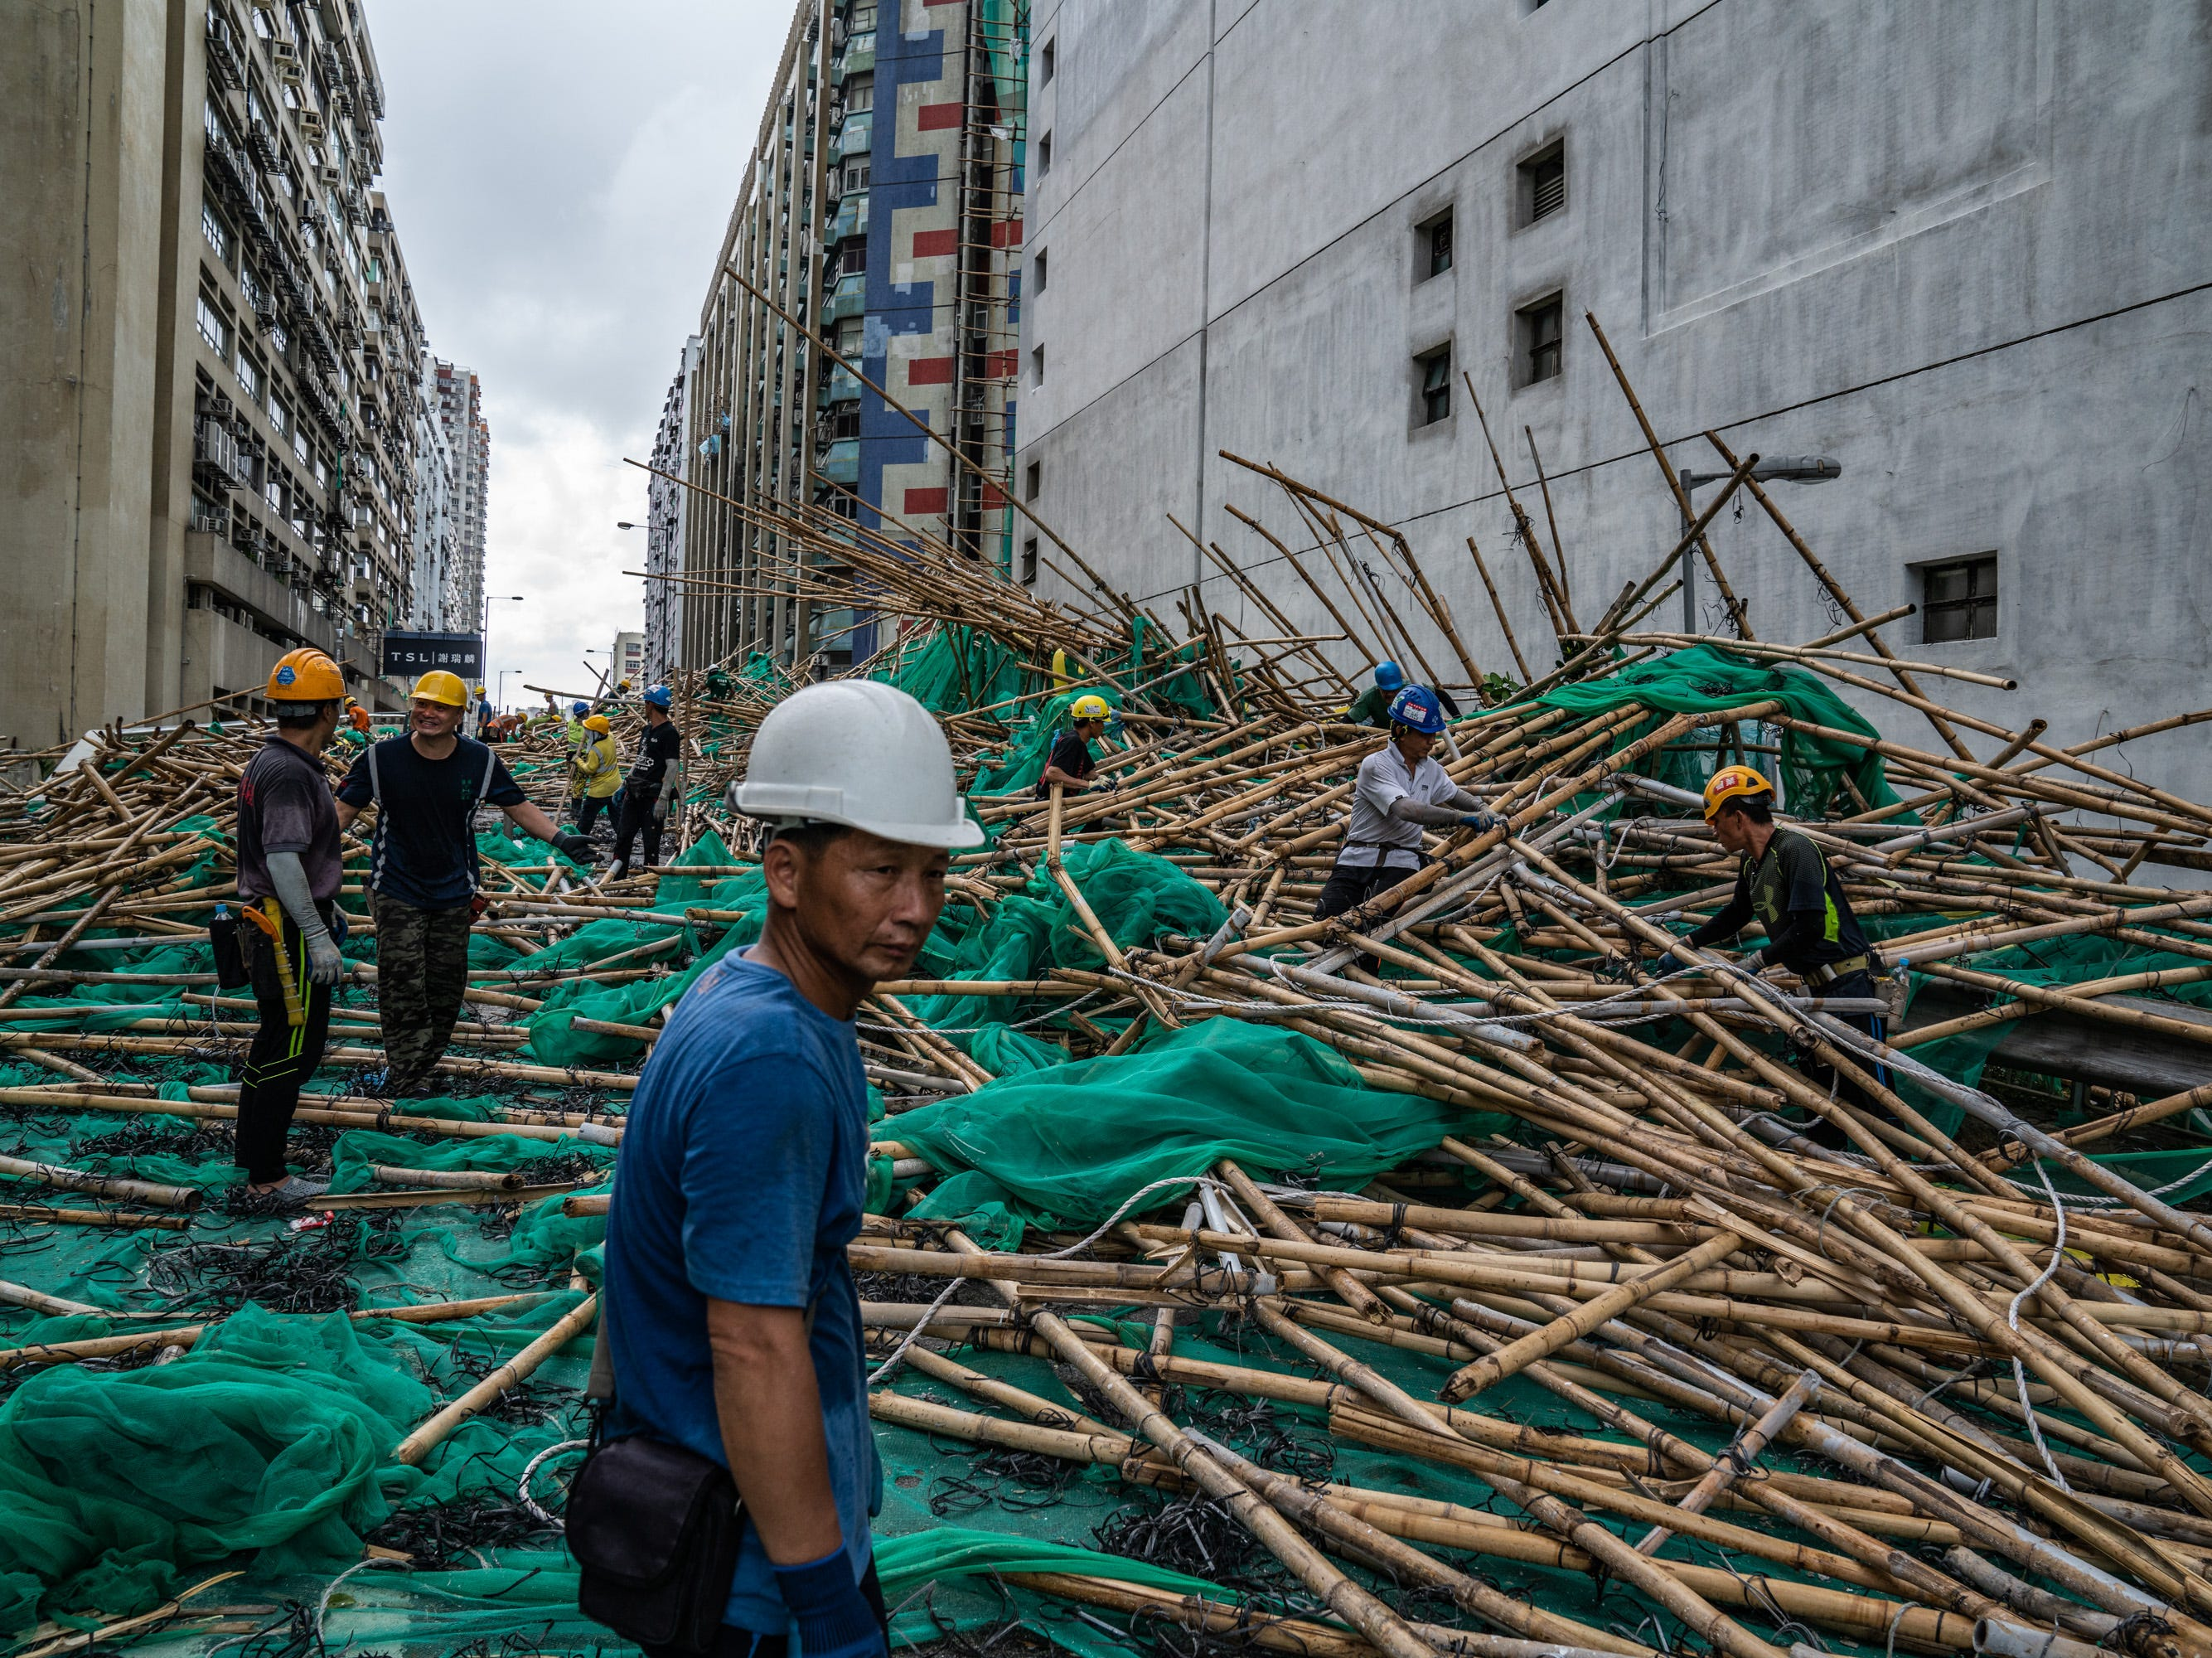 Workers deal with damaged bamboo scaffolding in the aftermath of Typhoon Mangkhut on Sept. 17, 2018 in Hong Kong.